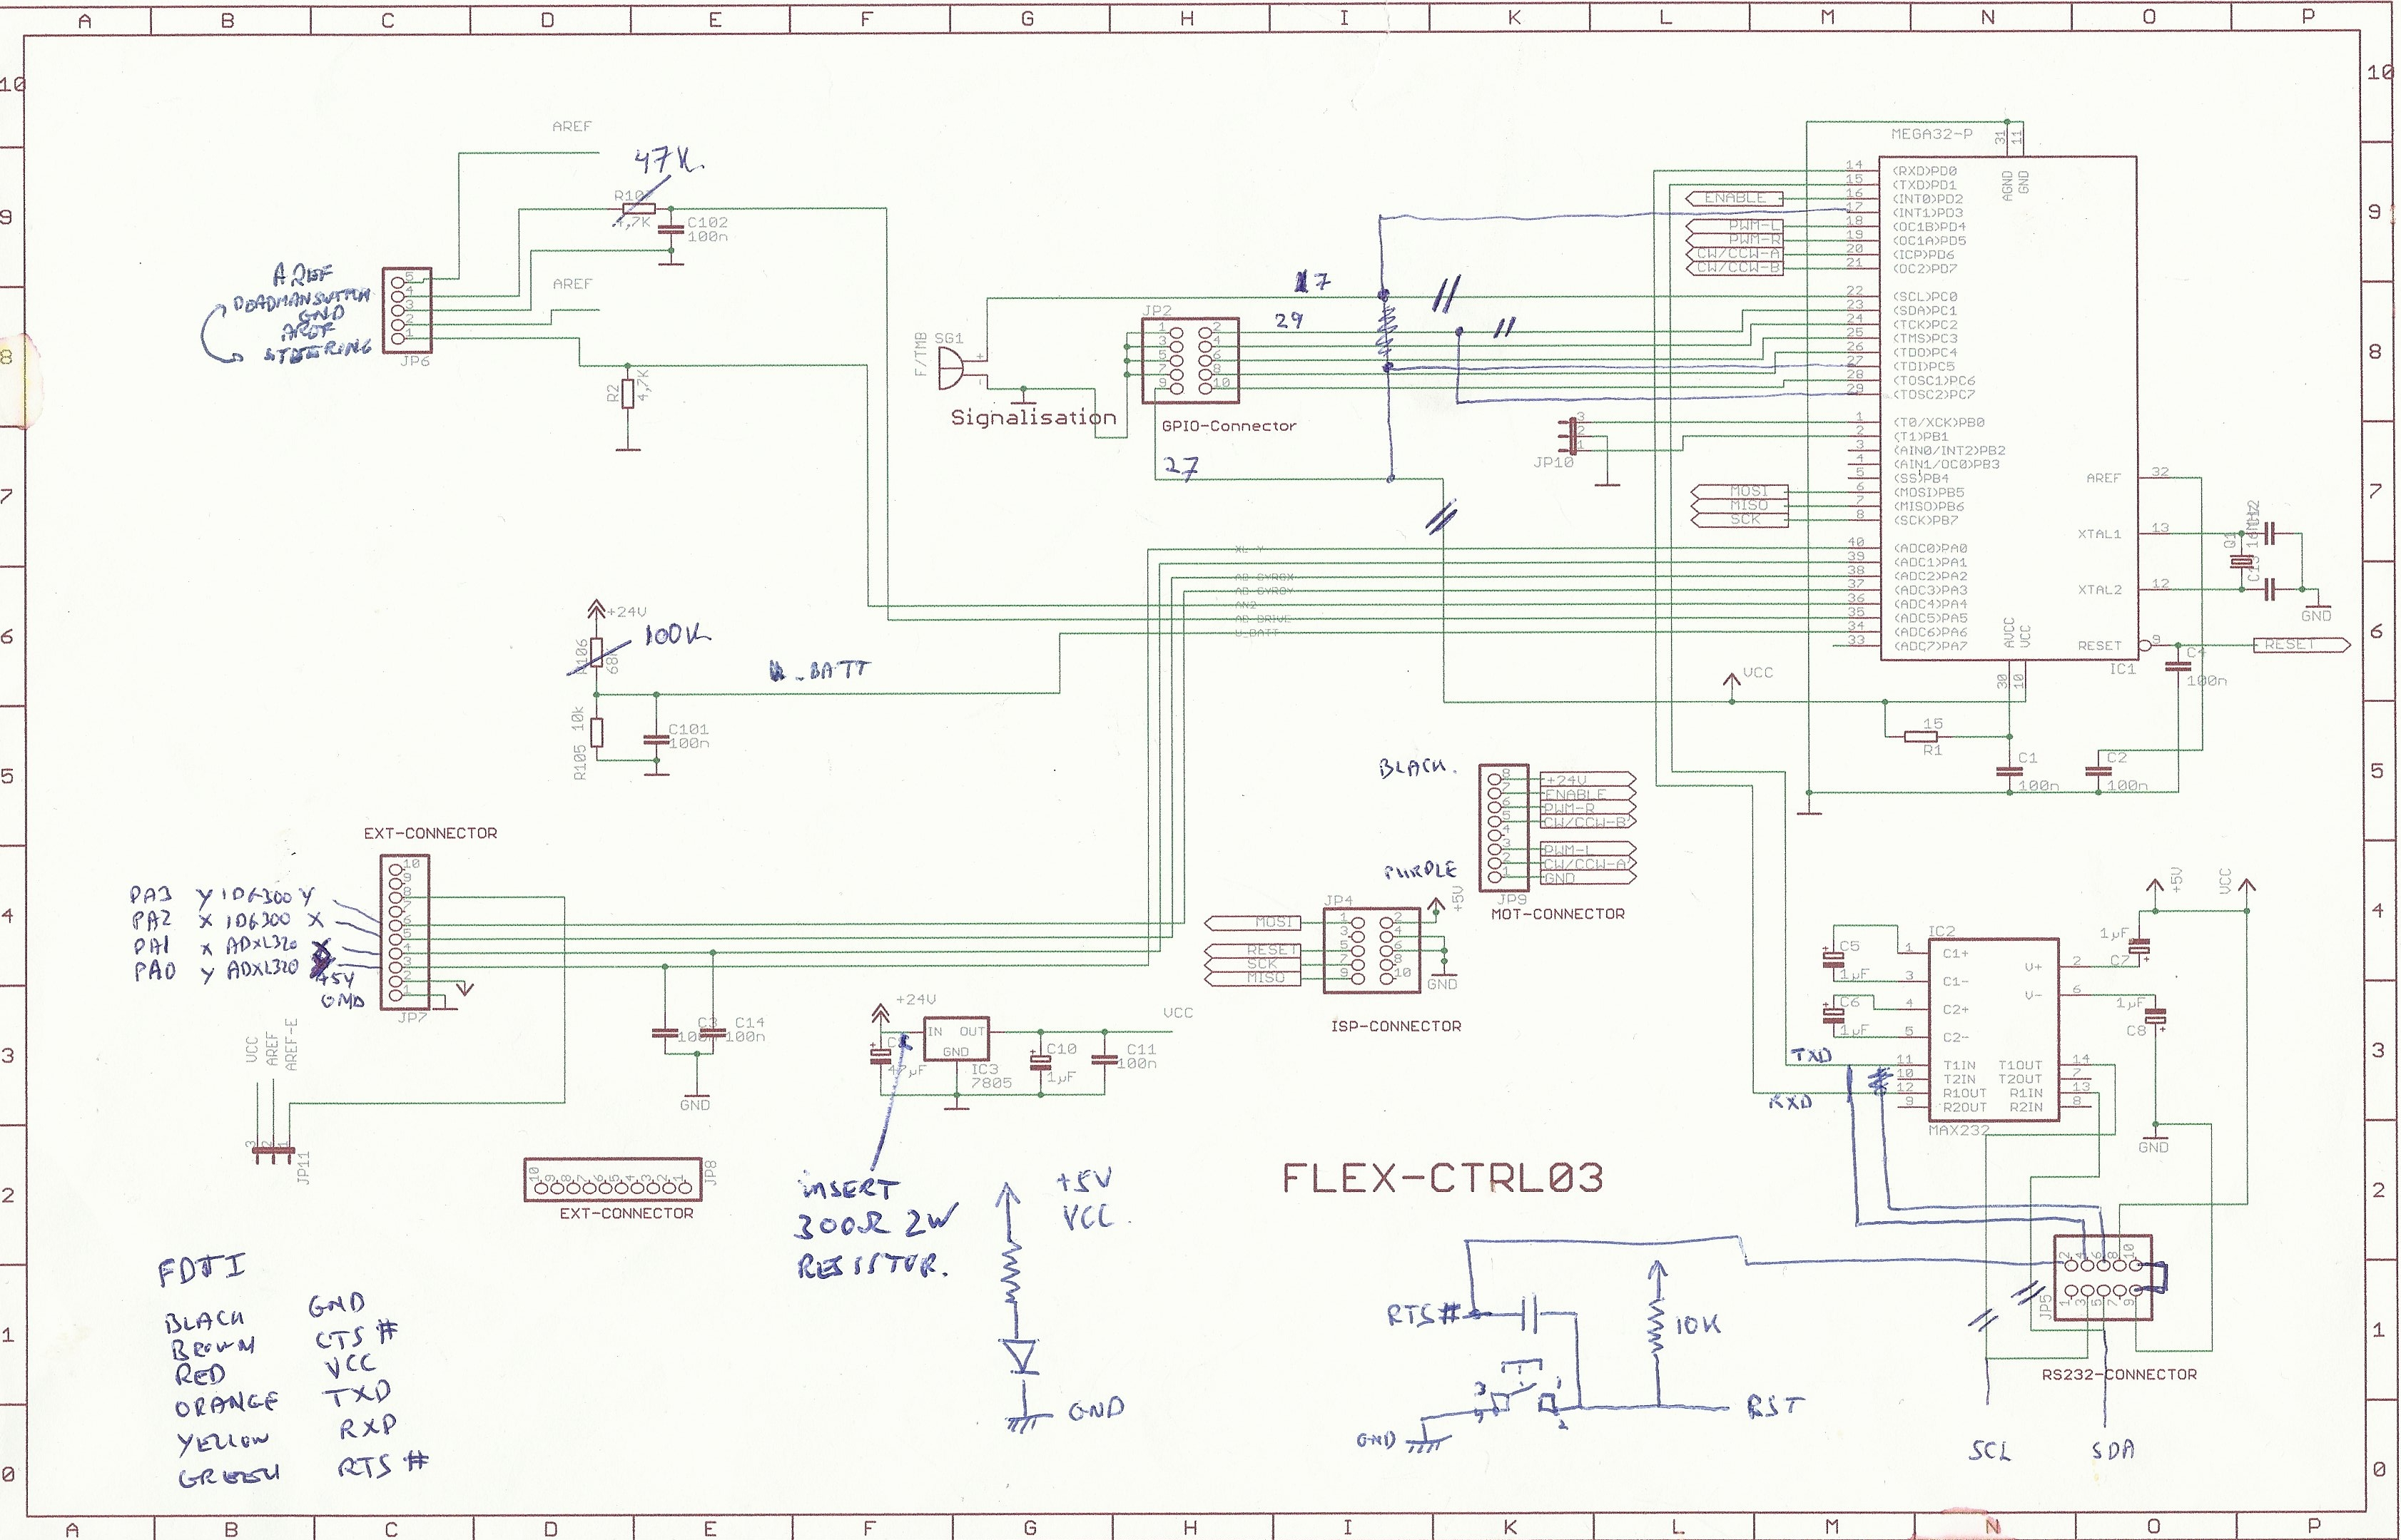 mpu6050 wiring diagram